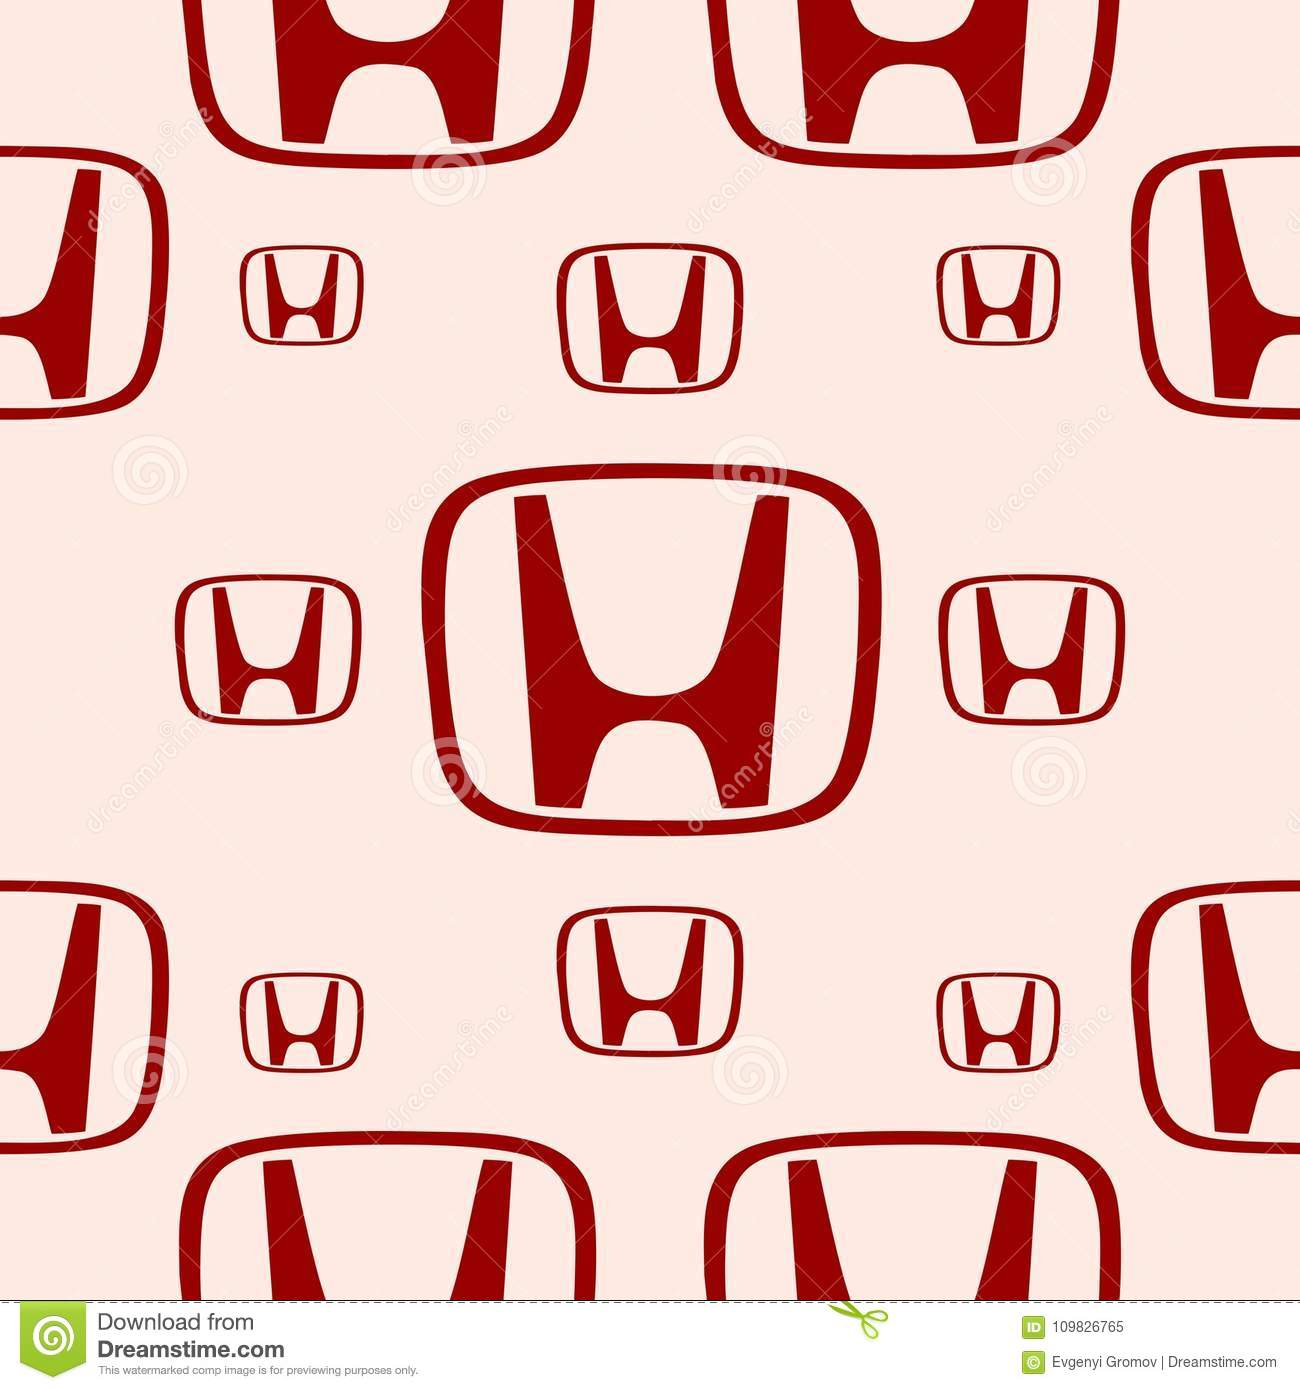 Honda Car Emblem Editorial Image Illustration Of Famous